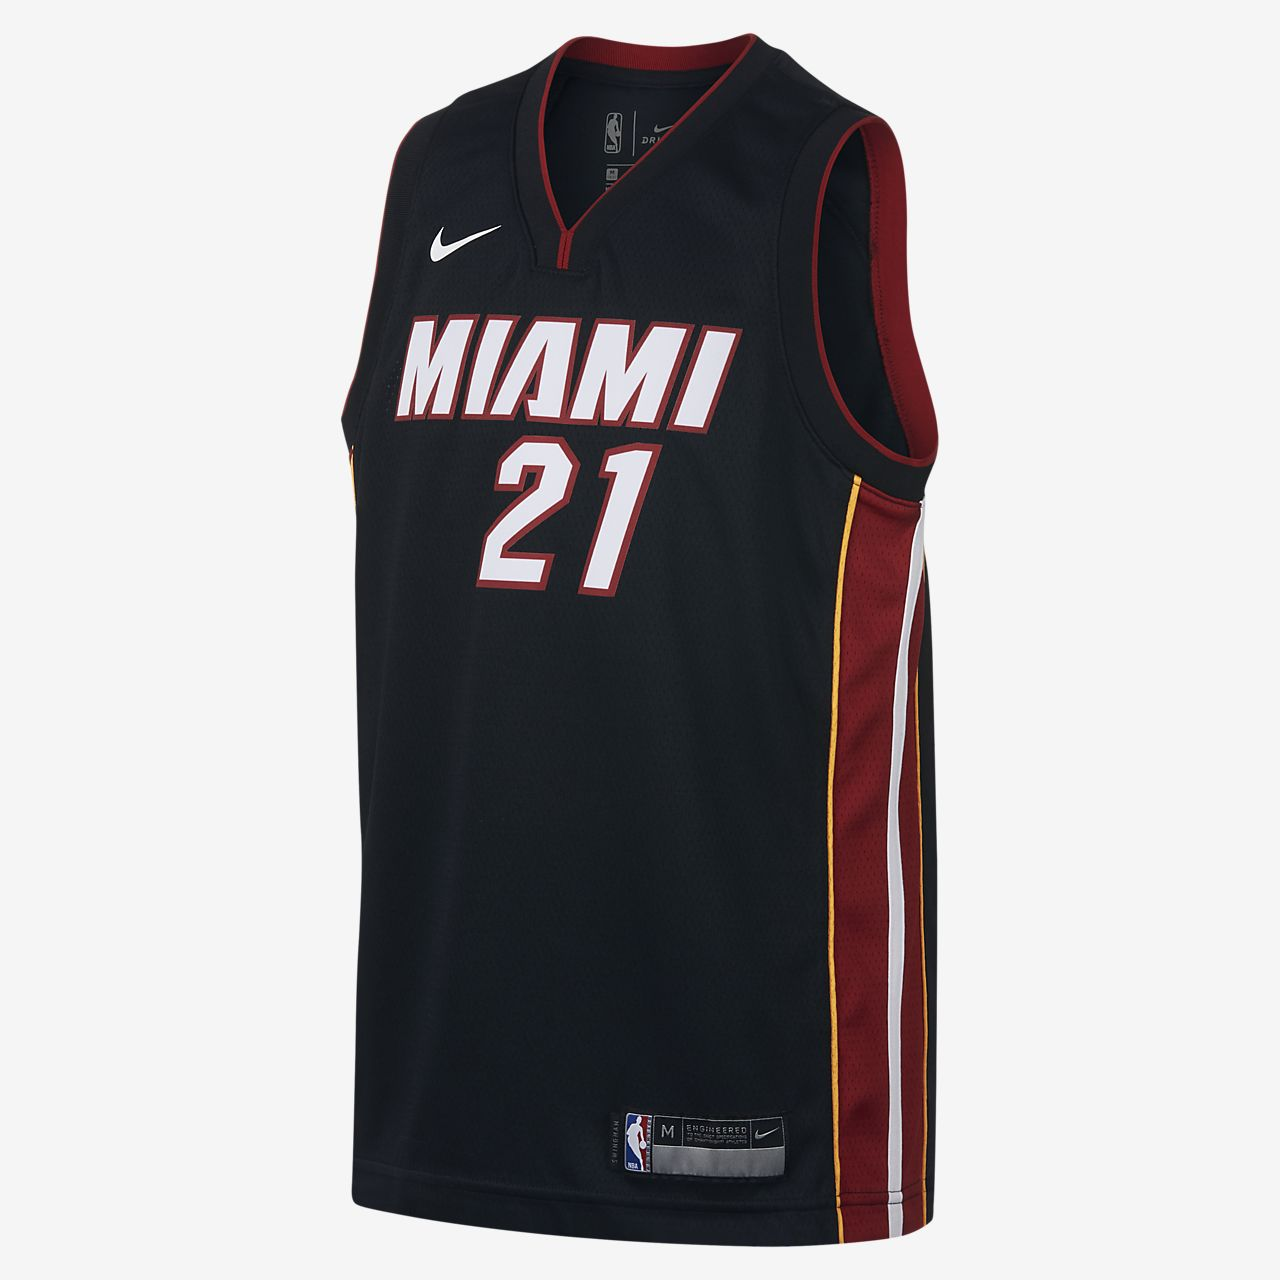 the best attitude 576d2 36d15 lebron miami heat jersey